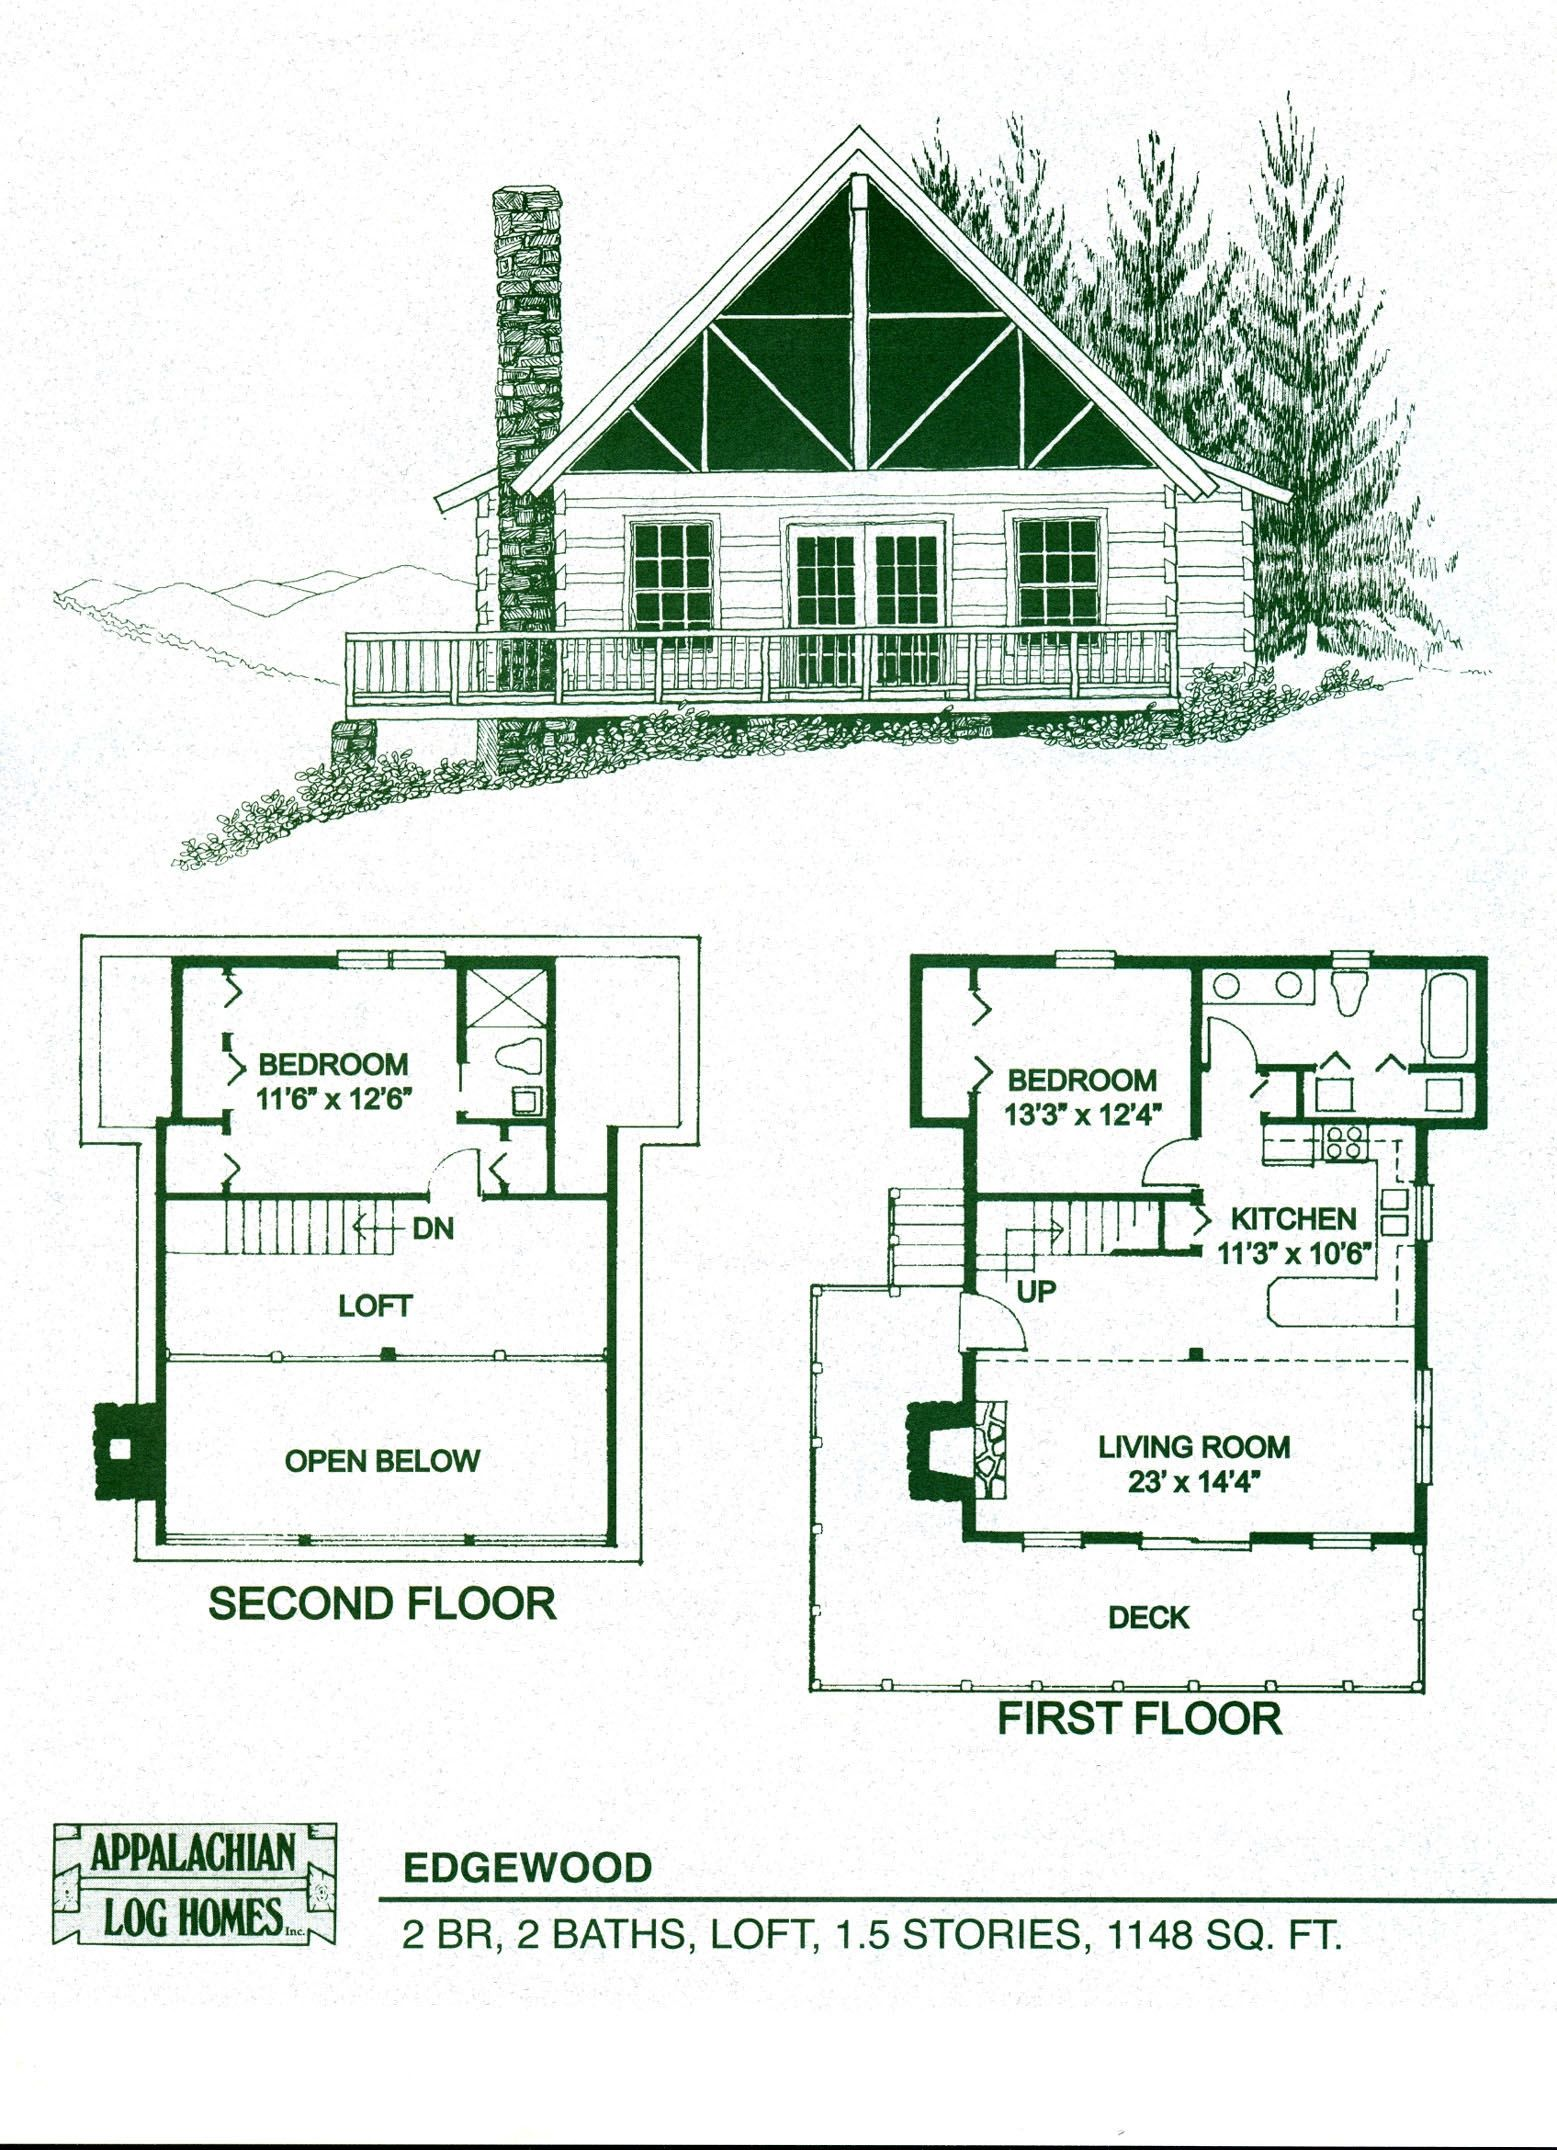 Simple Log Cabin Floor Plans Log Cabin Floor Plans Log Cabin Plans Loft Floor Plans